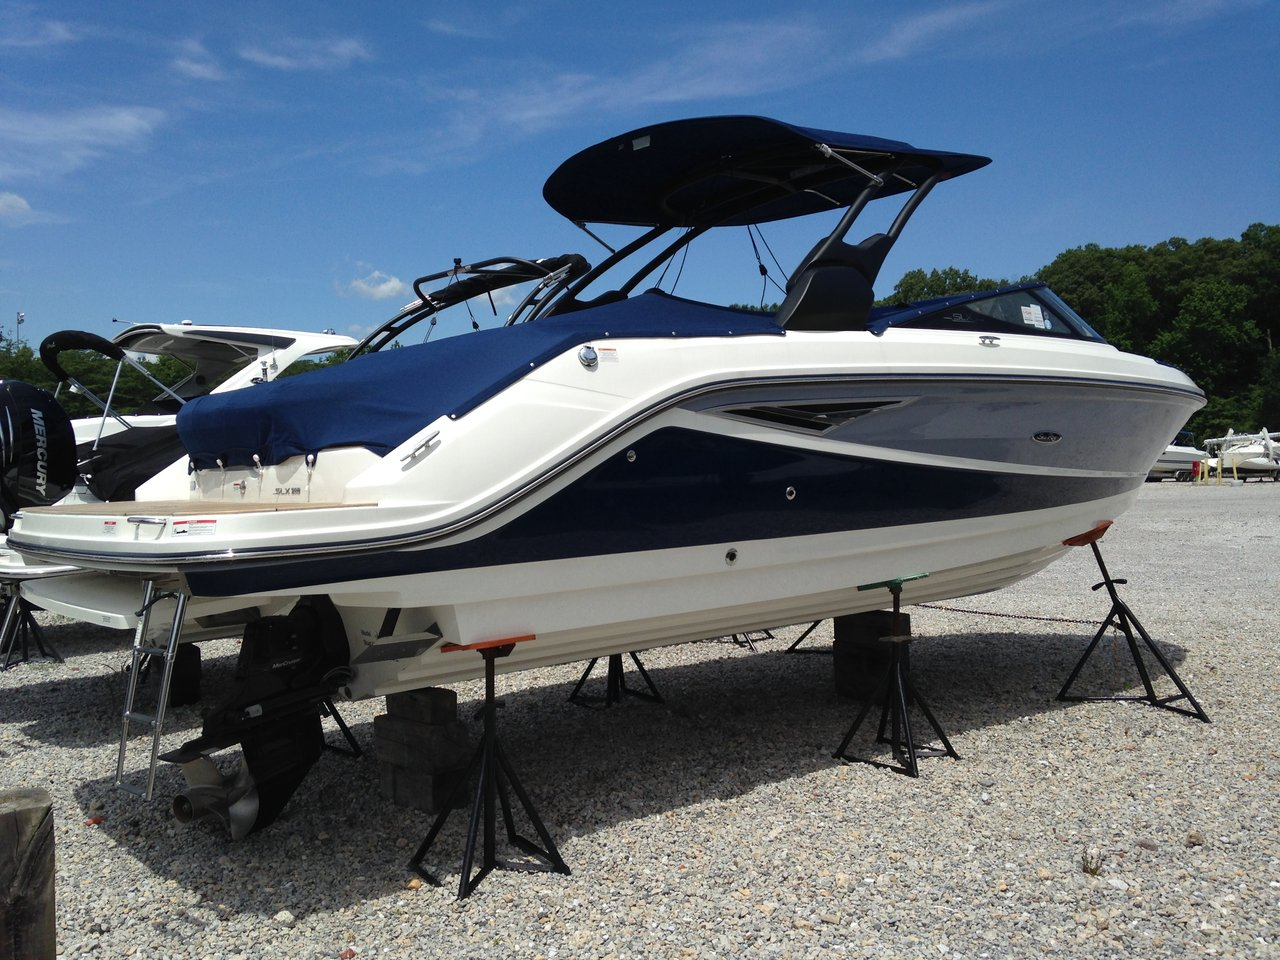 2017 New Sea Ray 280 SLX Bowrider Boat For Sale - $157,670